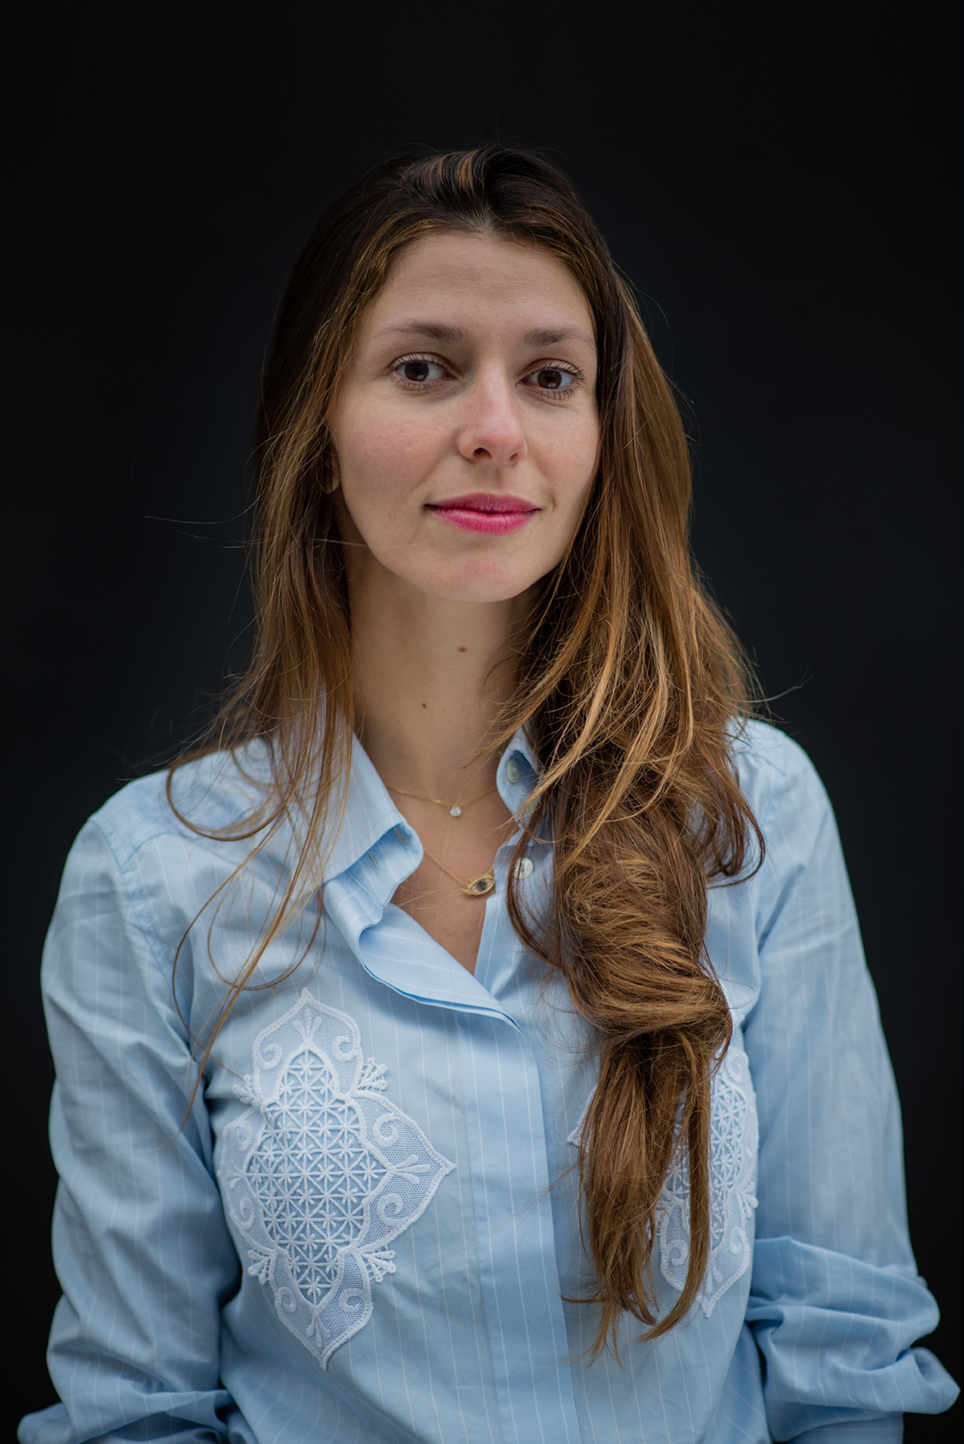 Ksenia established UNLTD London in 2014, together with Art Night, an all-night contemporary arts festival in extraordinary locations. In her role, Ksenia focuses on development, cultural fundraising and partnerships. Prior to this, Ksenia had experience working for Christie's New York, the Cabinet of the Deputy Mayor of Paris for Culture and the 2012 French presidential campaign. Ksenia is interested in the positive impact of the arts on the public realm and is always keen to discover and create new cultural experiences. She studied Public Affairs and Cultural Policy at Sciences Po Paris, holds an MSc in International Relations from the London School of Economics and is a fluent Russian and French speaker.